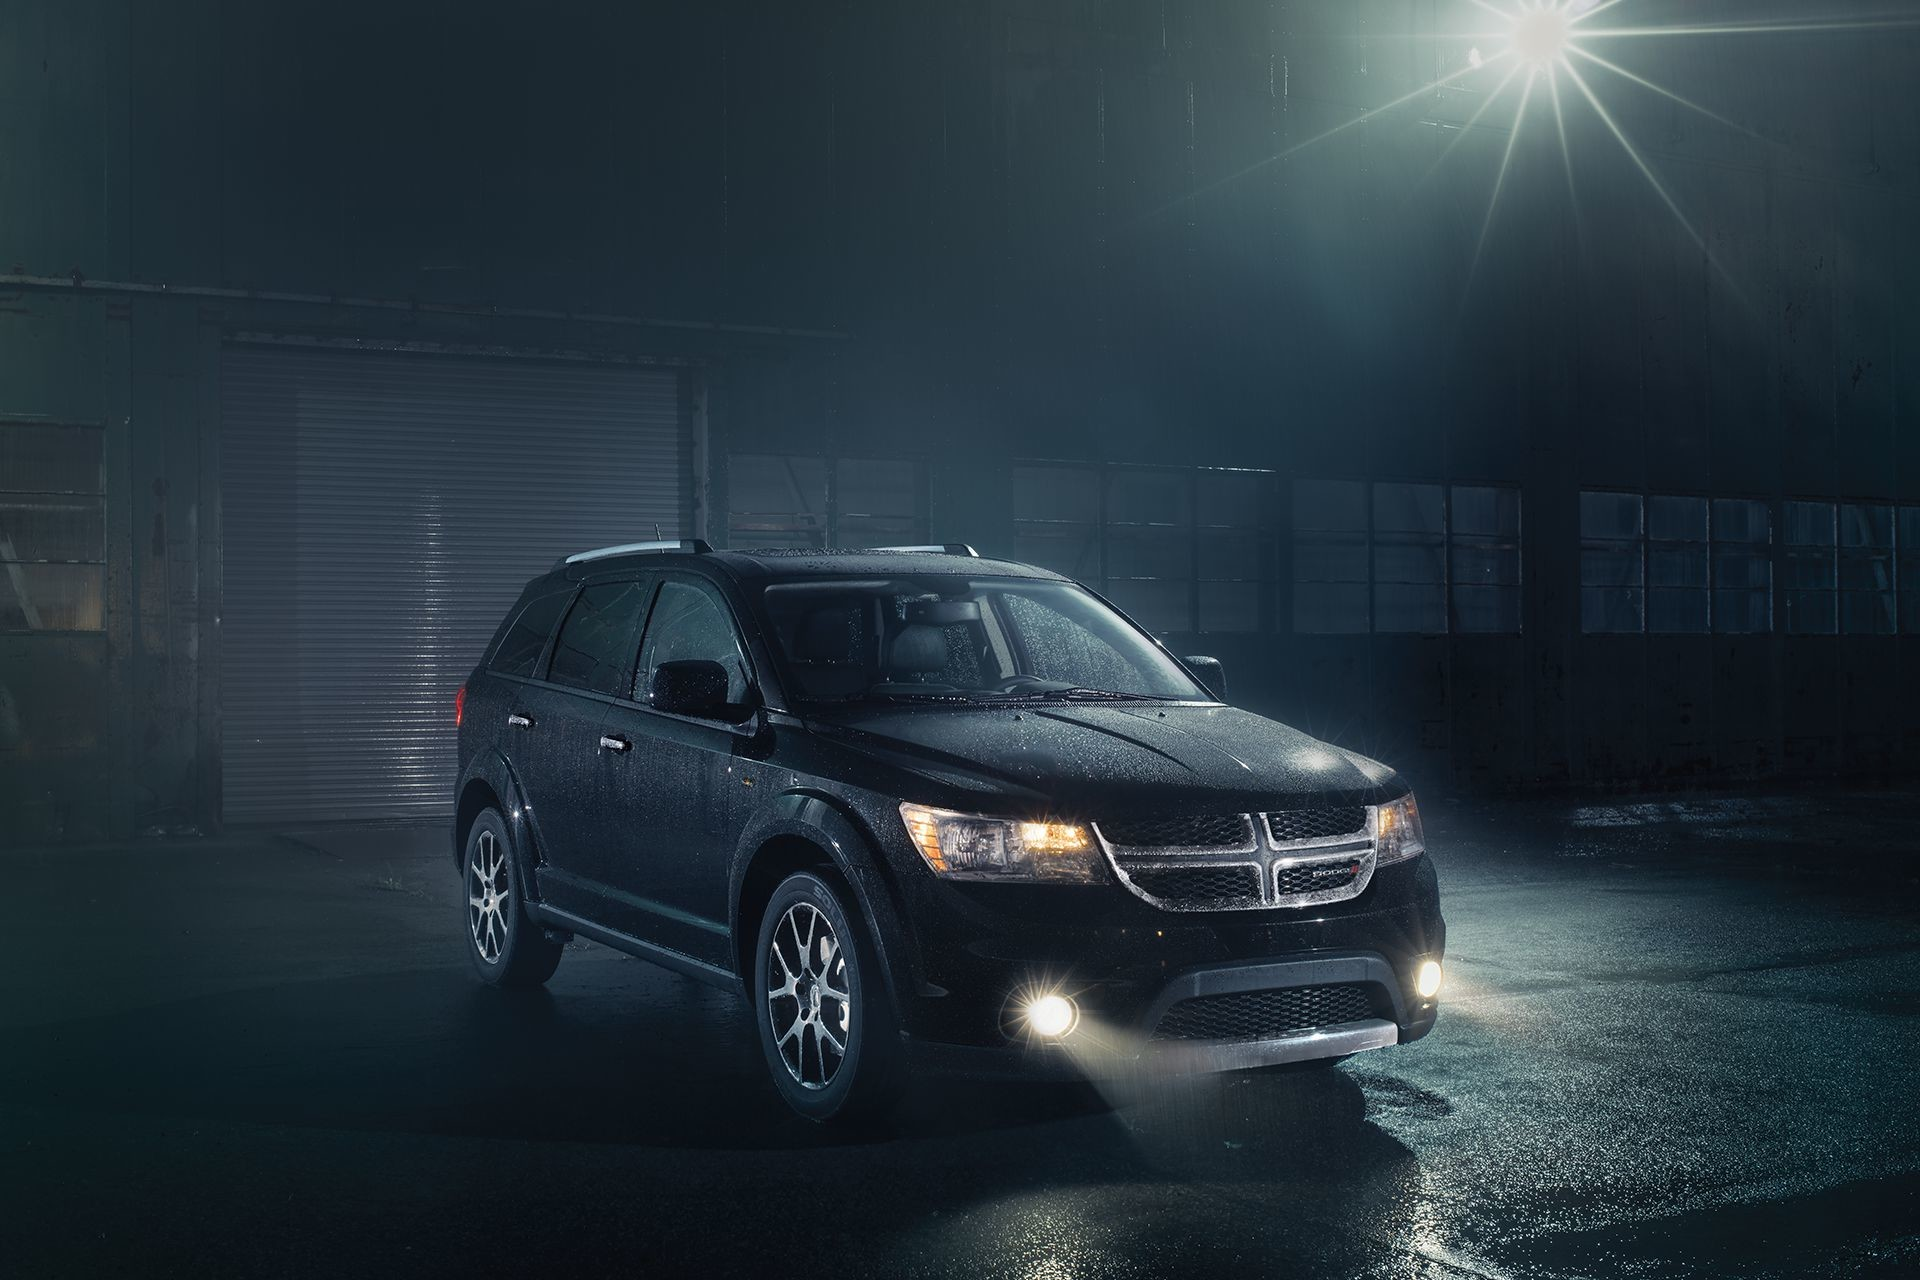 2018 Dodge Journey Quad-halogen Headlights